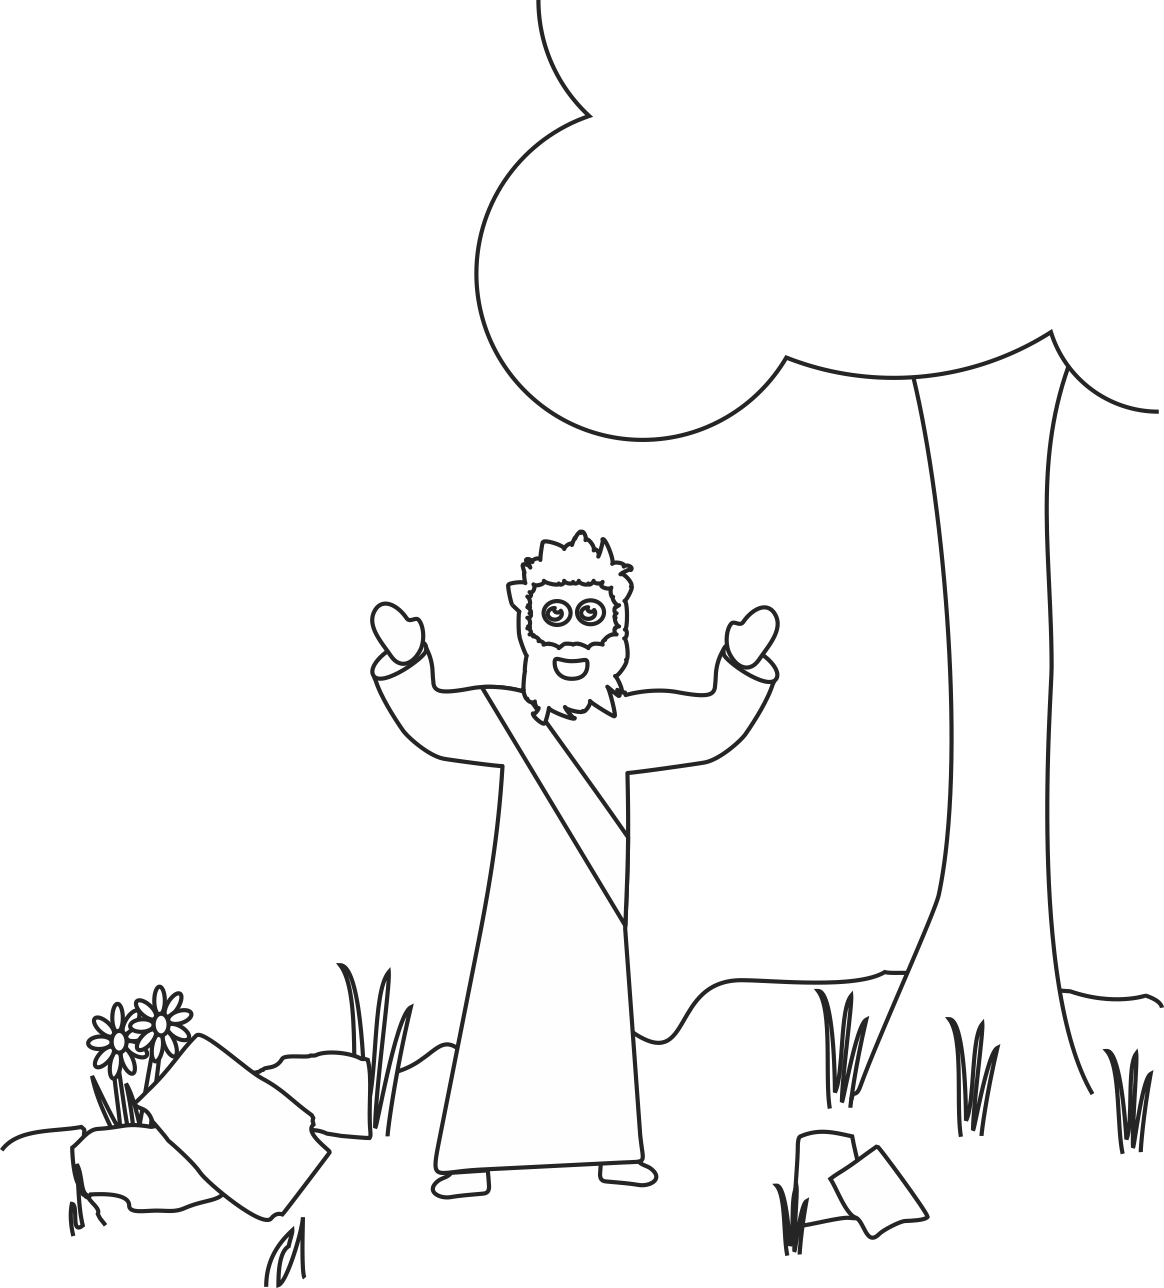 My Children's Curriculum: Sermon on the Mount: The Beatitudes